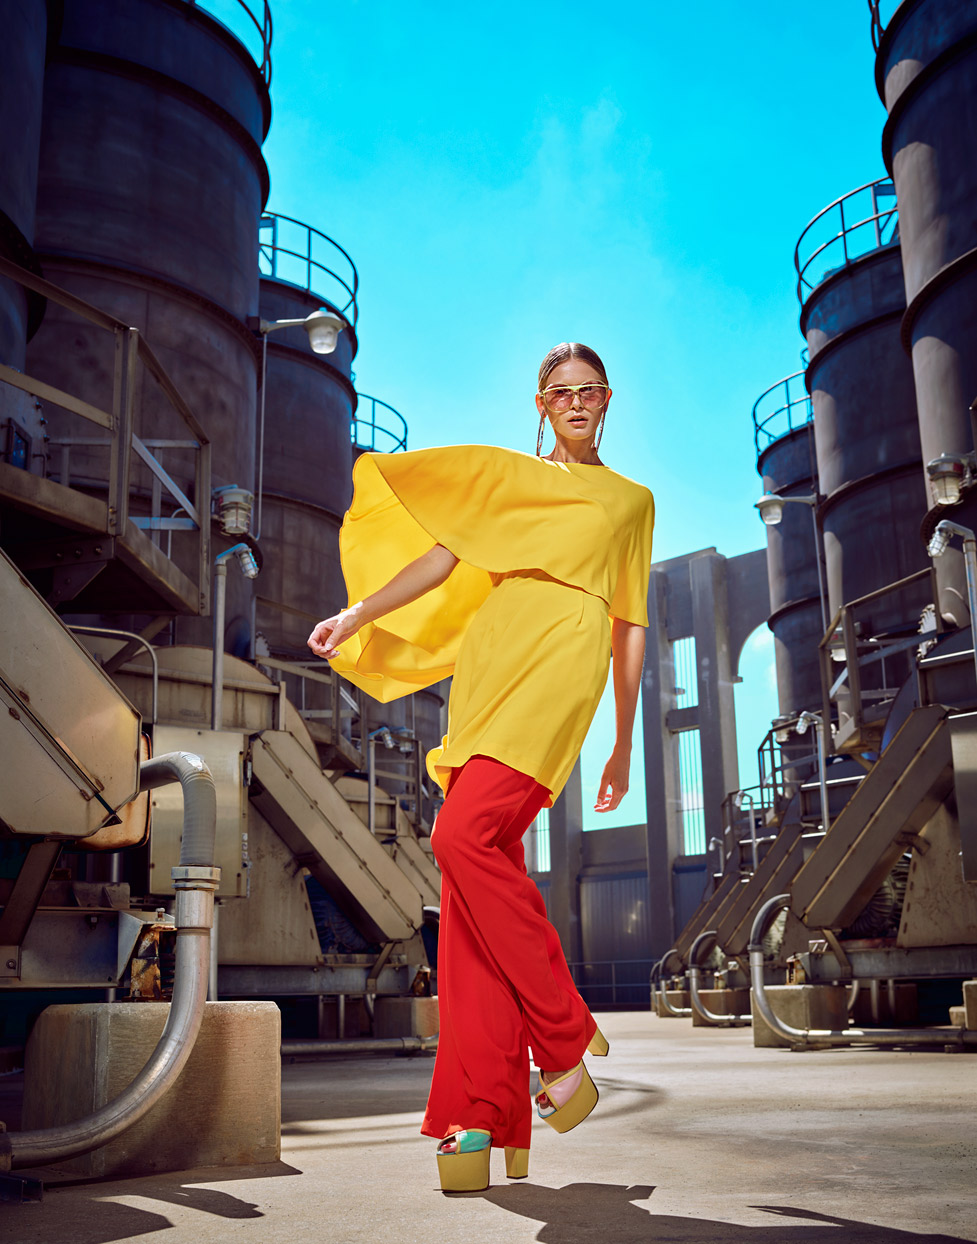 Woman walking with high heels, bright red pants and flowing yellow top in an industrial setting - Mark DeLong: Fashion Gallery